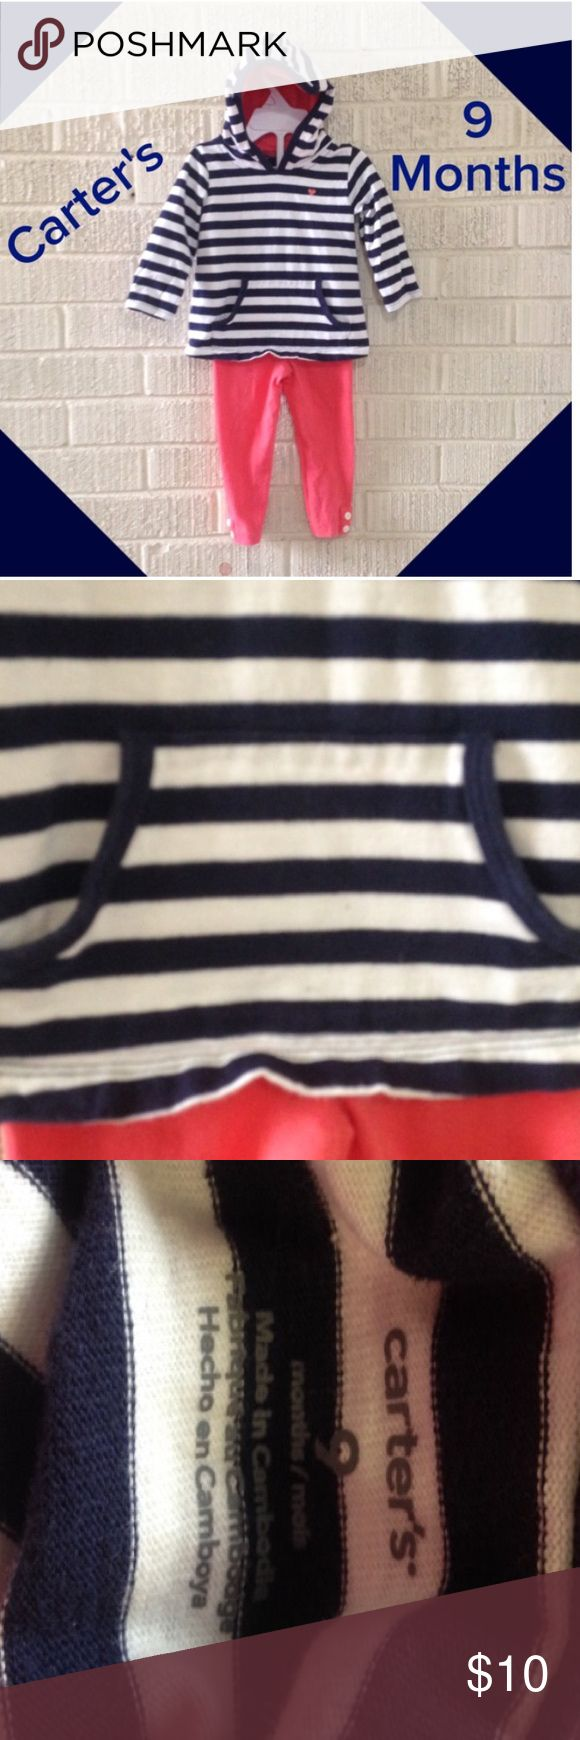 9m Carter's nautical outfit Coral pants and navy and white striped pull over hoodie Carter's Matching Sets